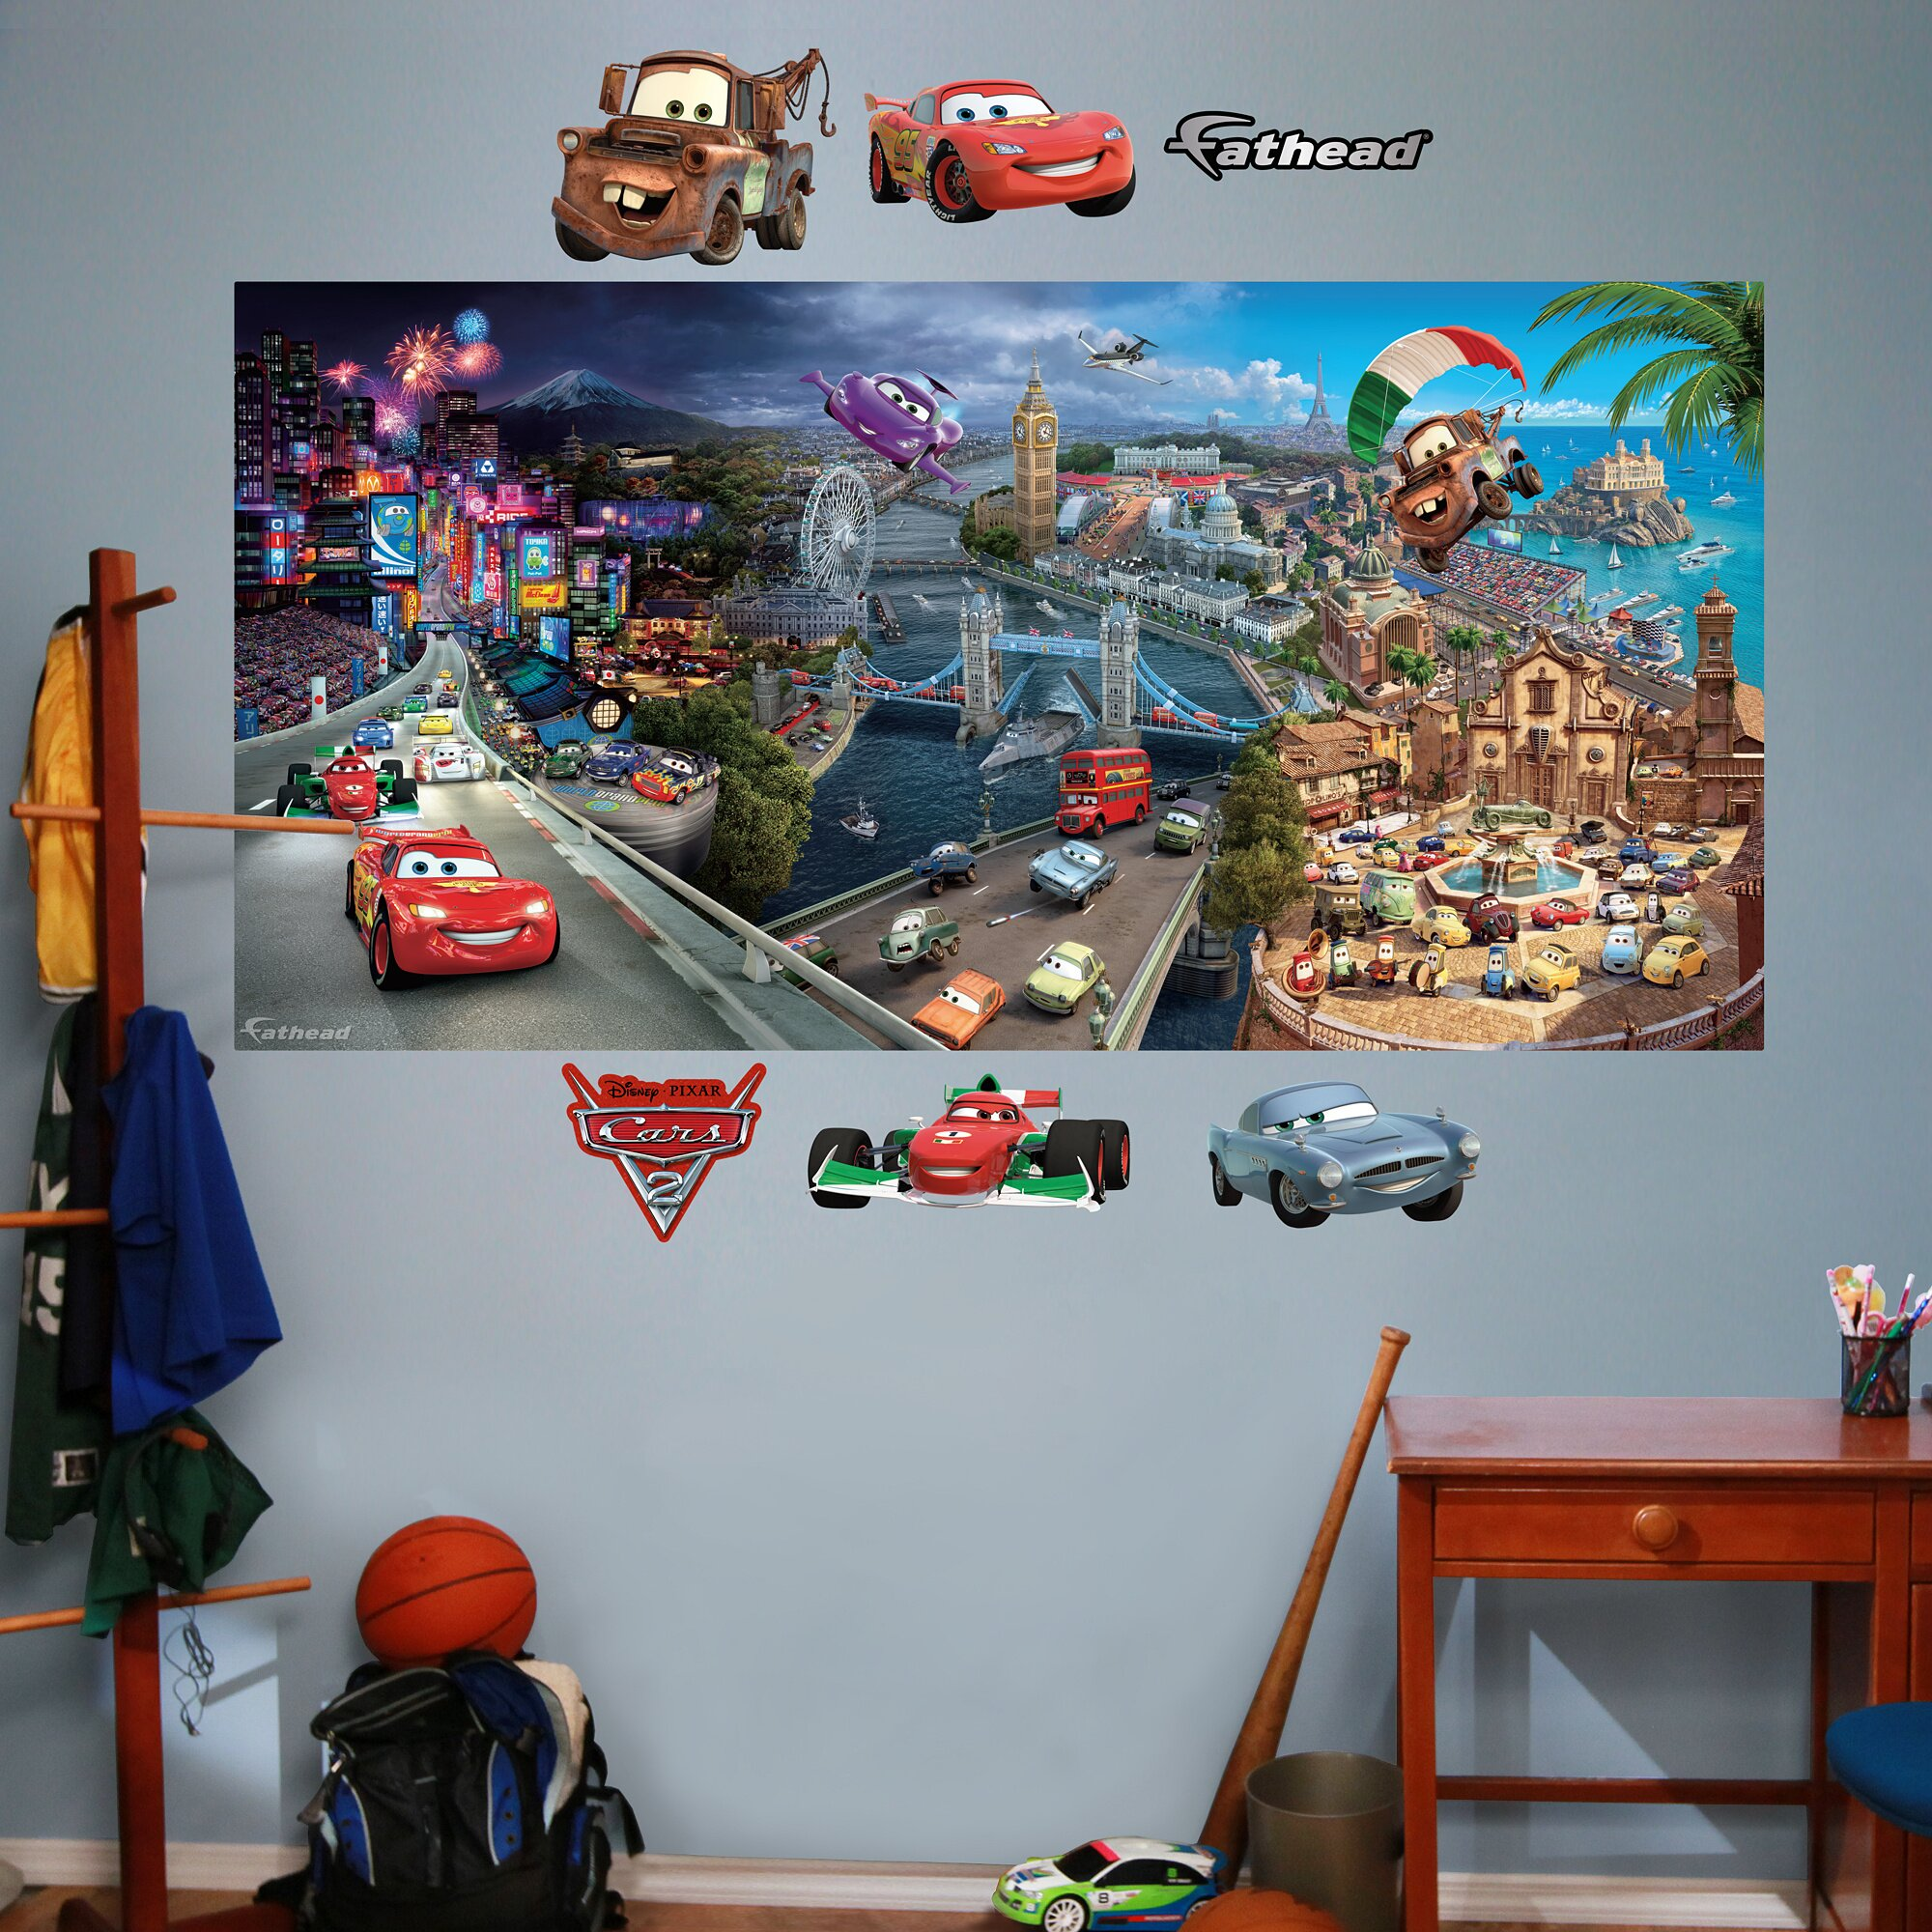 Fathead Disney Cars 2 Wall Decal